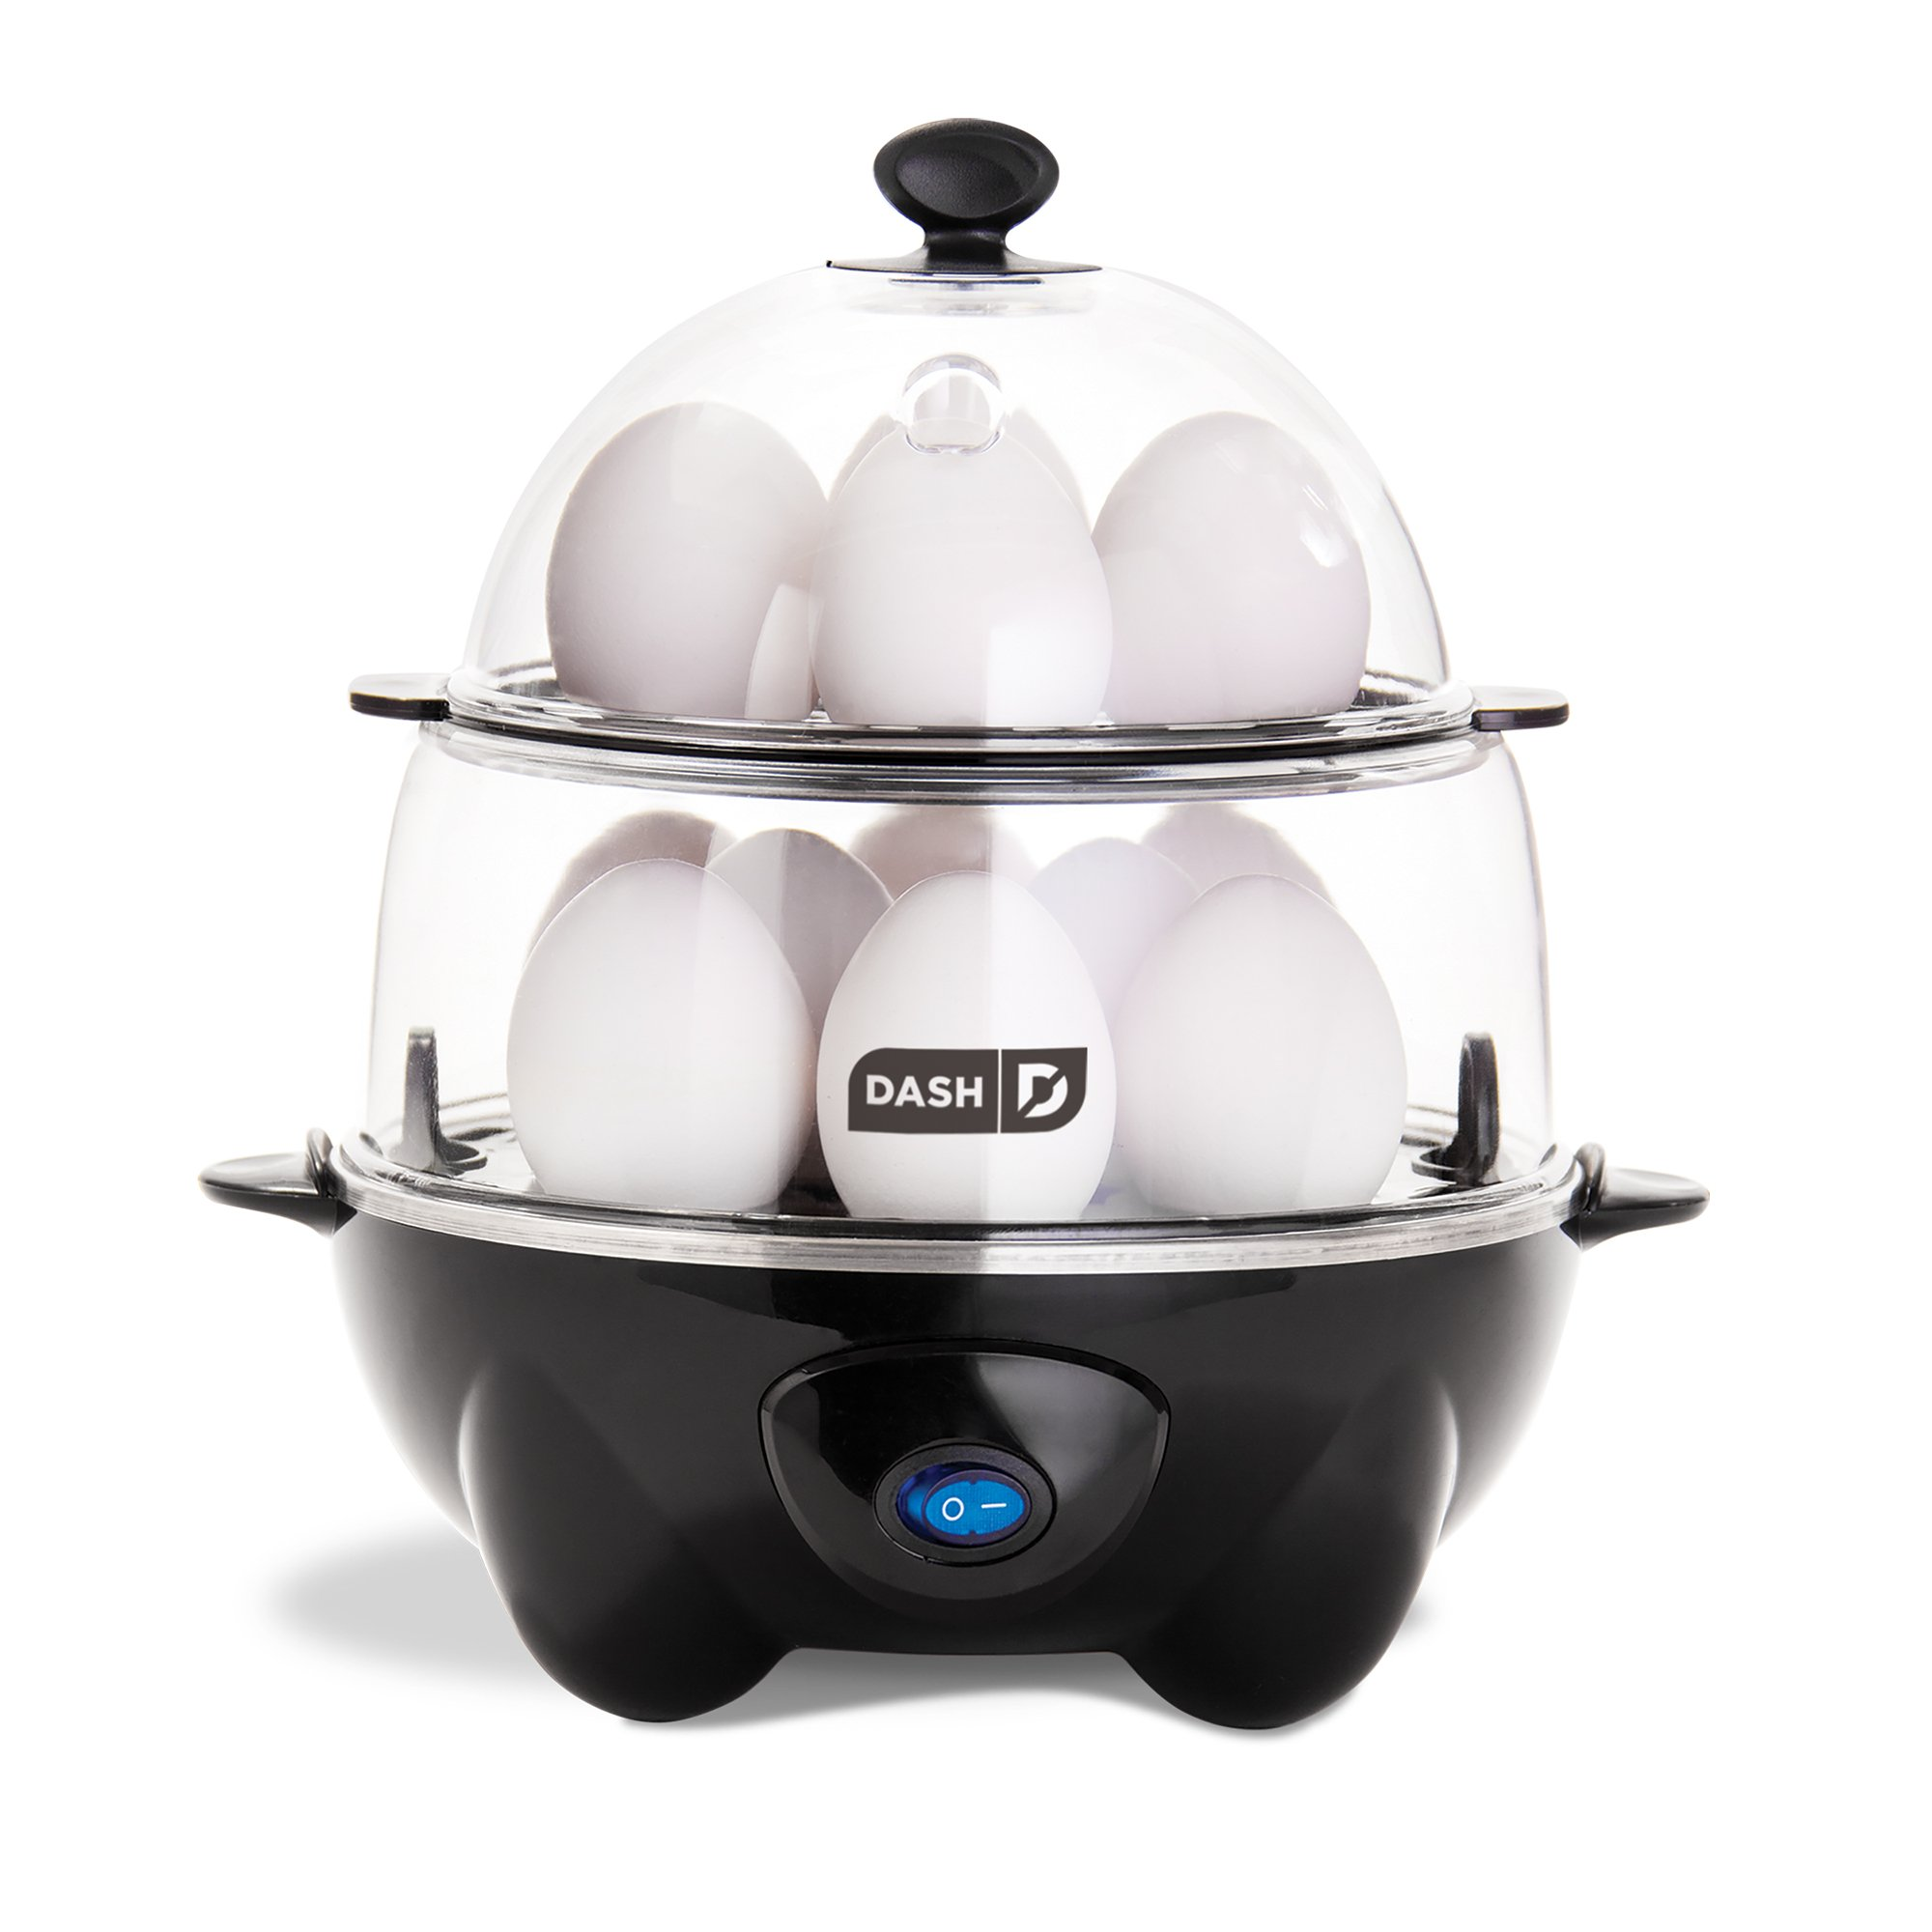 Dash Deluxe Rapid Egg Cooker: 12 Egg Capacity Electric Egg Cooker: Hard Boiled Eggs, Poached Eggs, Scrambled Eggs, Omelets, Steamed Vegetables, Seafood, Dumplings & More w/Auto Shut Off Feature Black